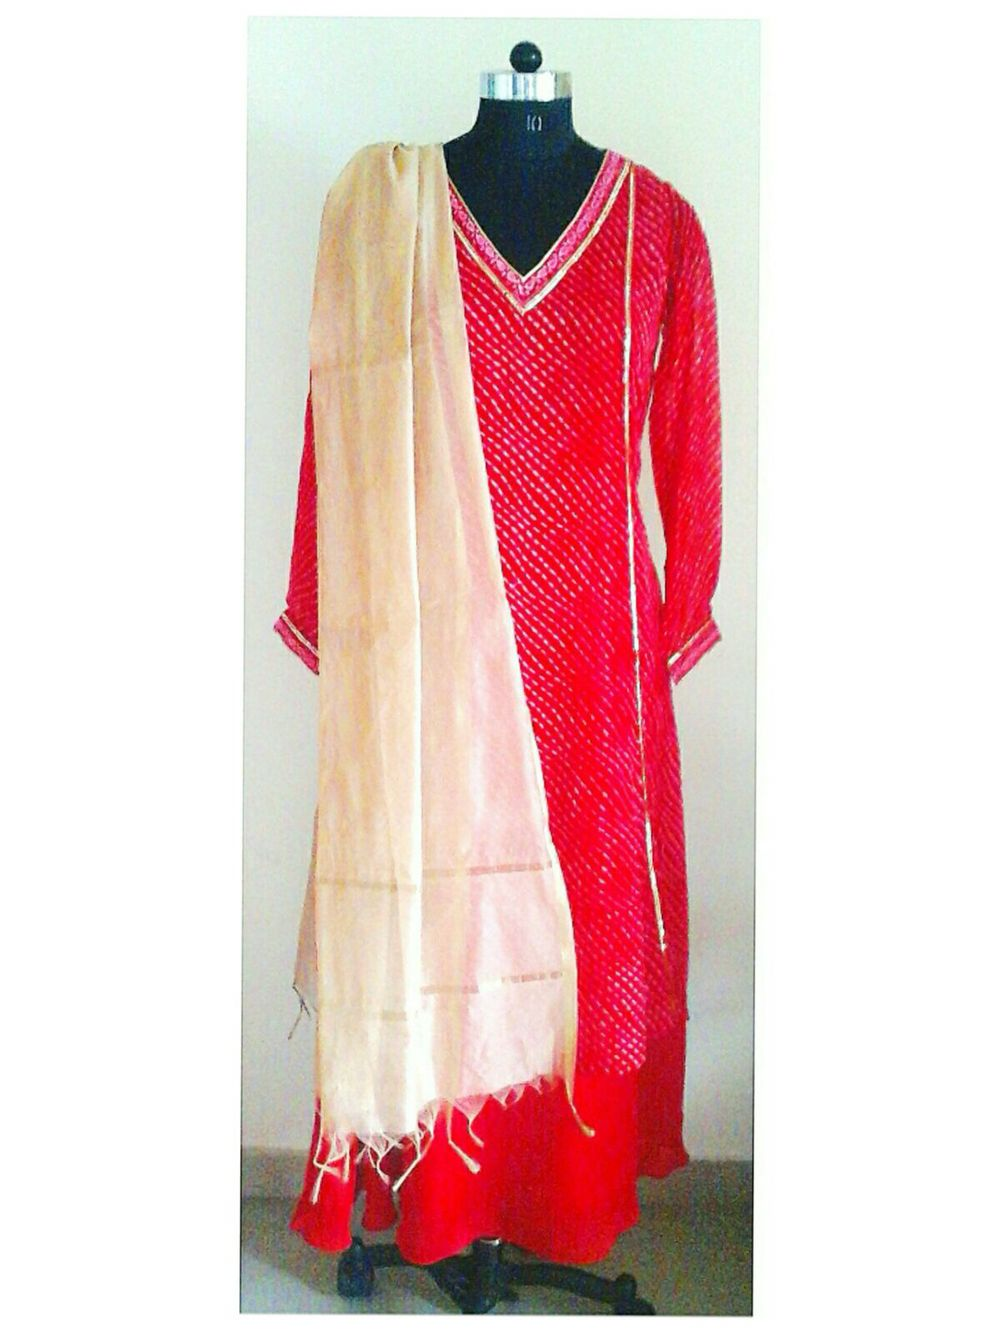 Red leheriya print georgette kurta. Tuned with red satin georgette skirt. Off-white south cotton silk dupatta.  Can be customized in any color. To book your order/any query, contact us: call/whatsapp on +91 9833617147.  Like us? Follow us! https://m.facebook.com/VastranDecorbySoumiyaKhanna  #Fashion #fashionista #fashionblogger #bollywoodfashion #indian #bollywood #stylediva #diva #pretty #boutique #designer #clothing #clothingline #clothingbrand #womenswear #womensbrand #womensfashion…